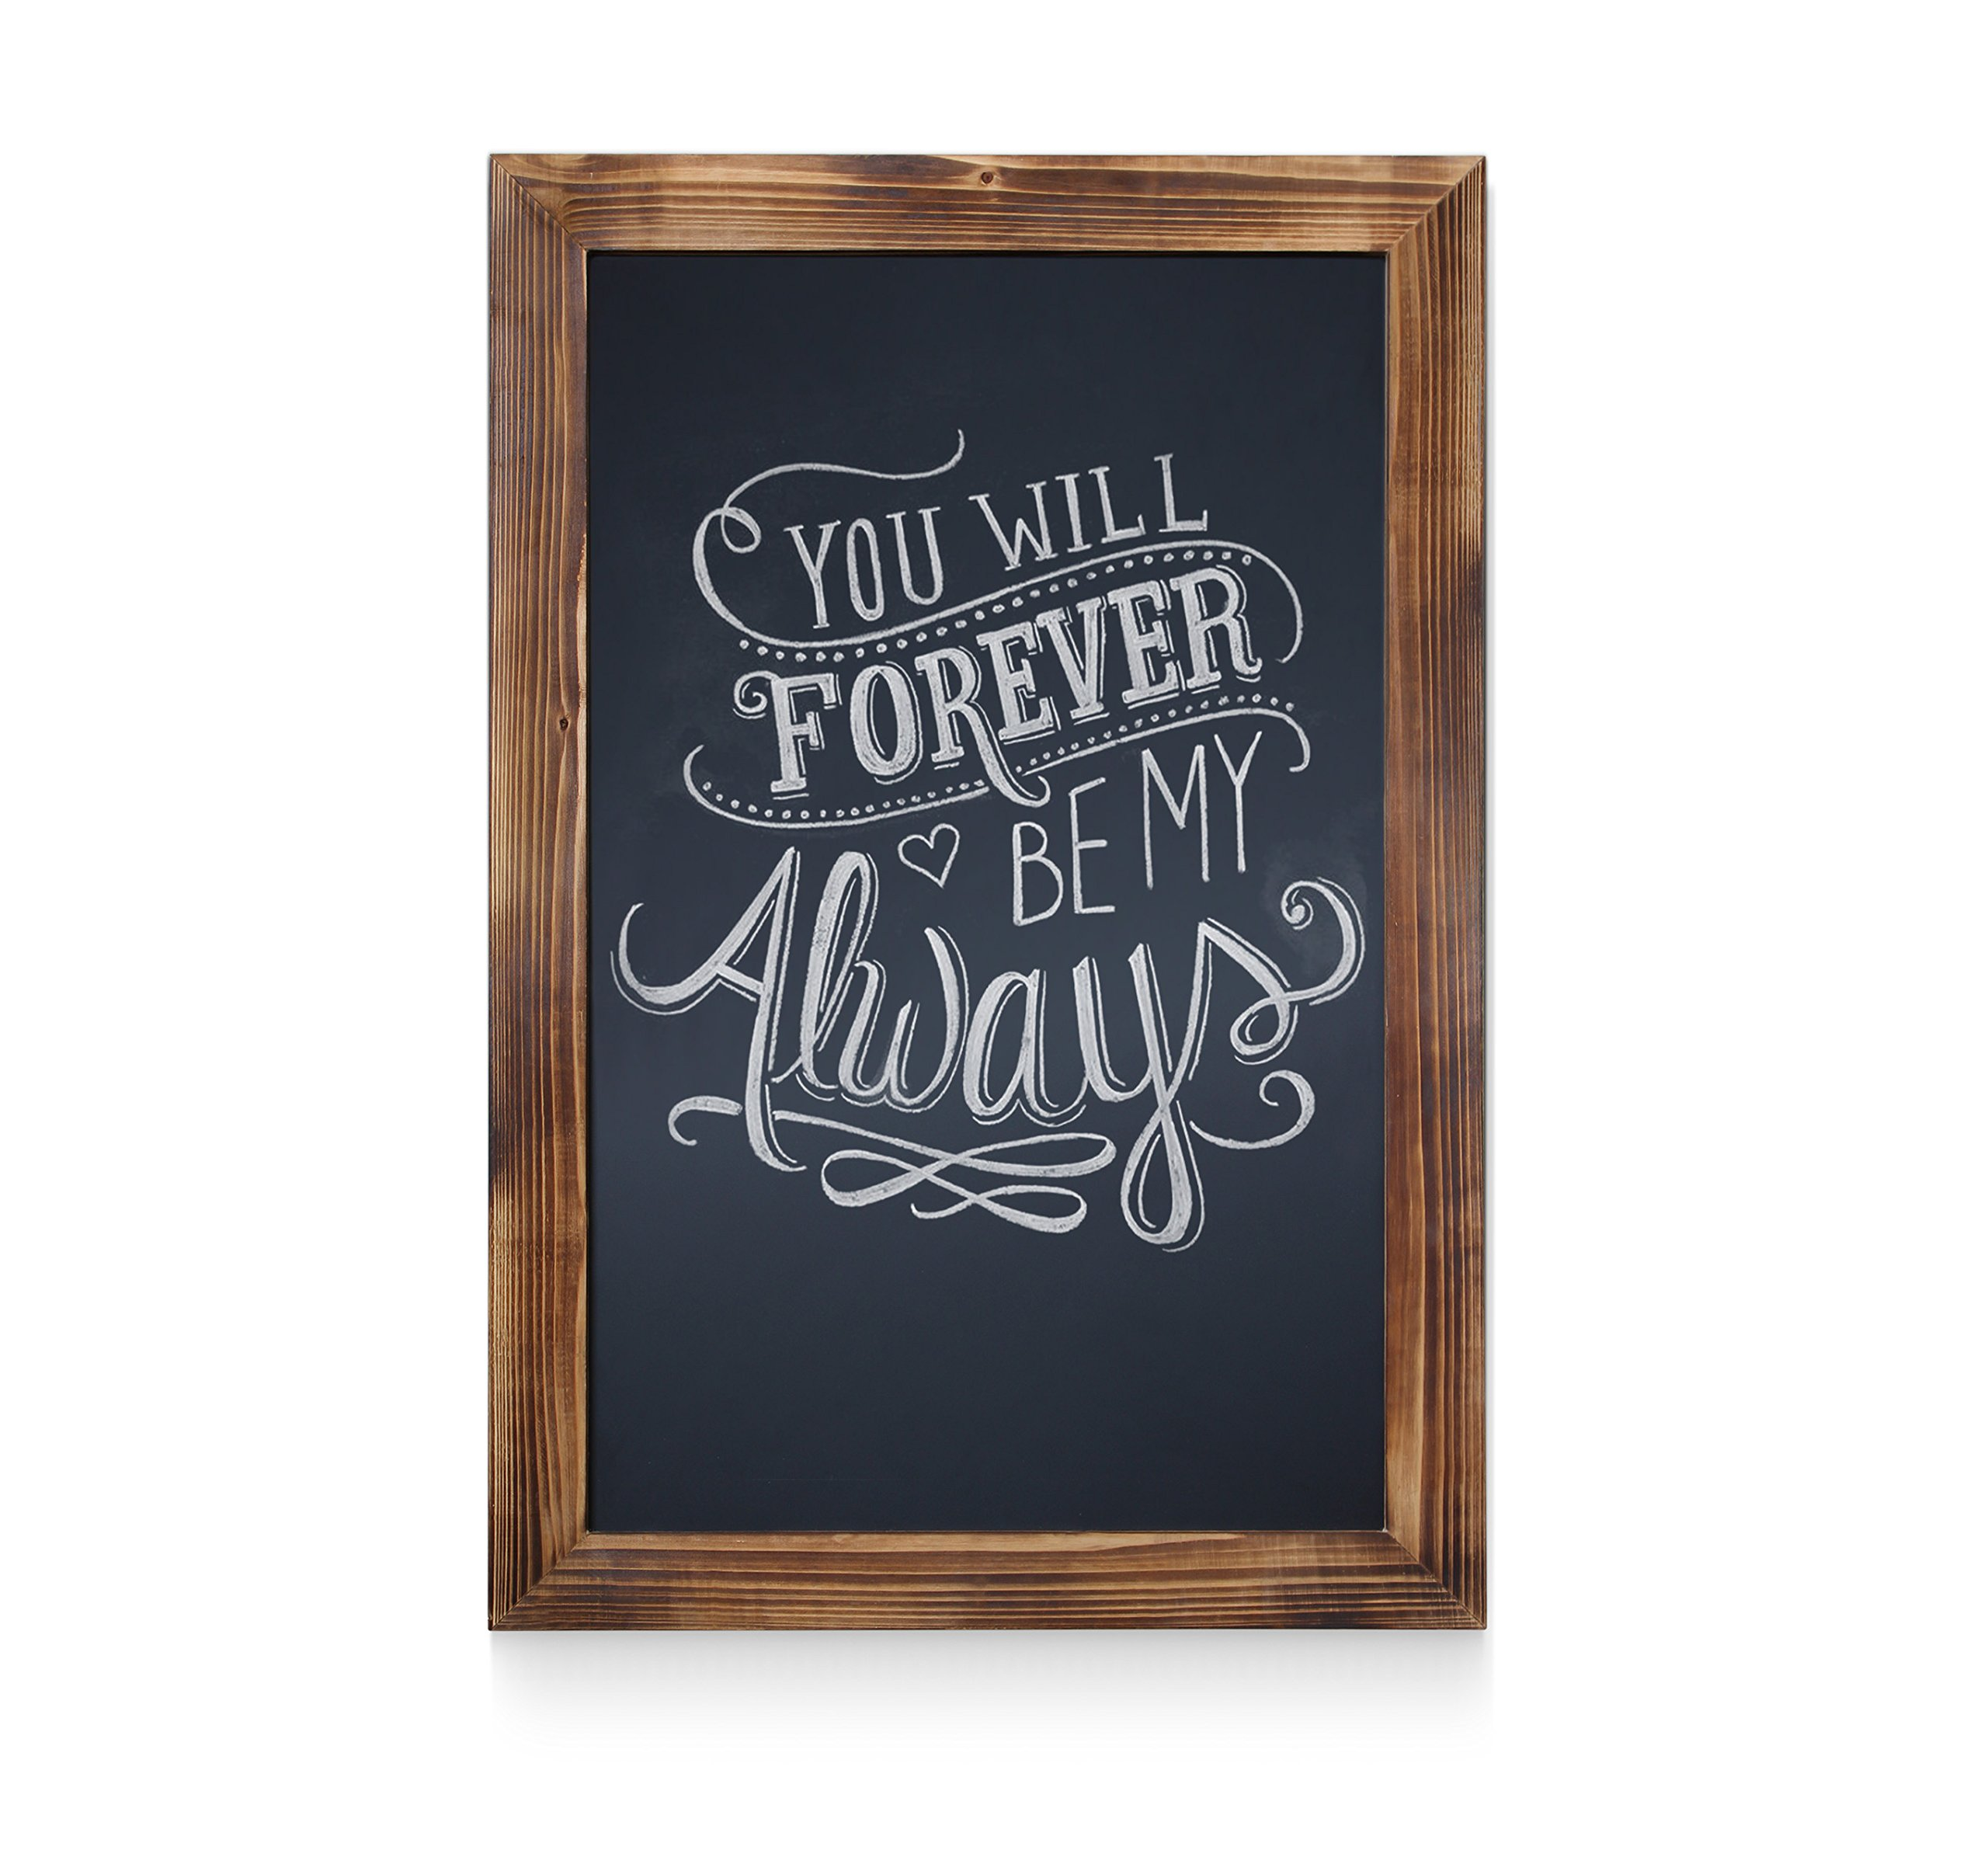 HBCY Creations Rustic Torched Wood Magnetic Wall Chalkboard, Extra Large Size 20'' x 30'', Framed Decorative Chalkboard - Great for Kitchen Decor, Weddings, Restaurant Menus and More! … (20'' x 30'')